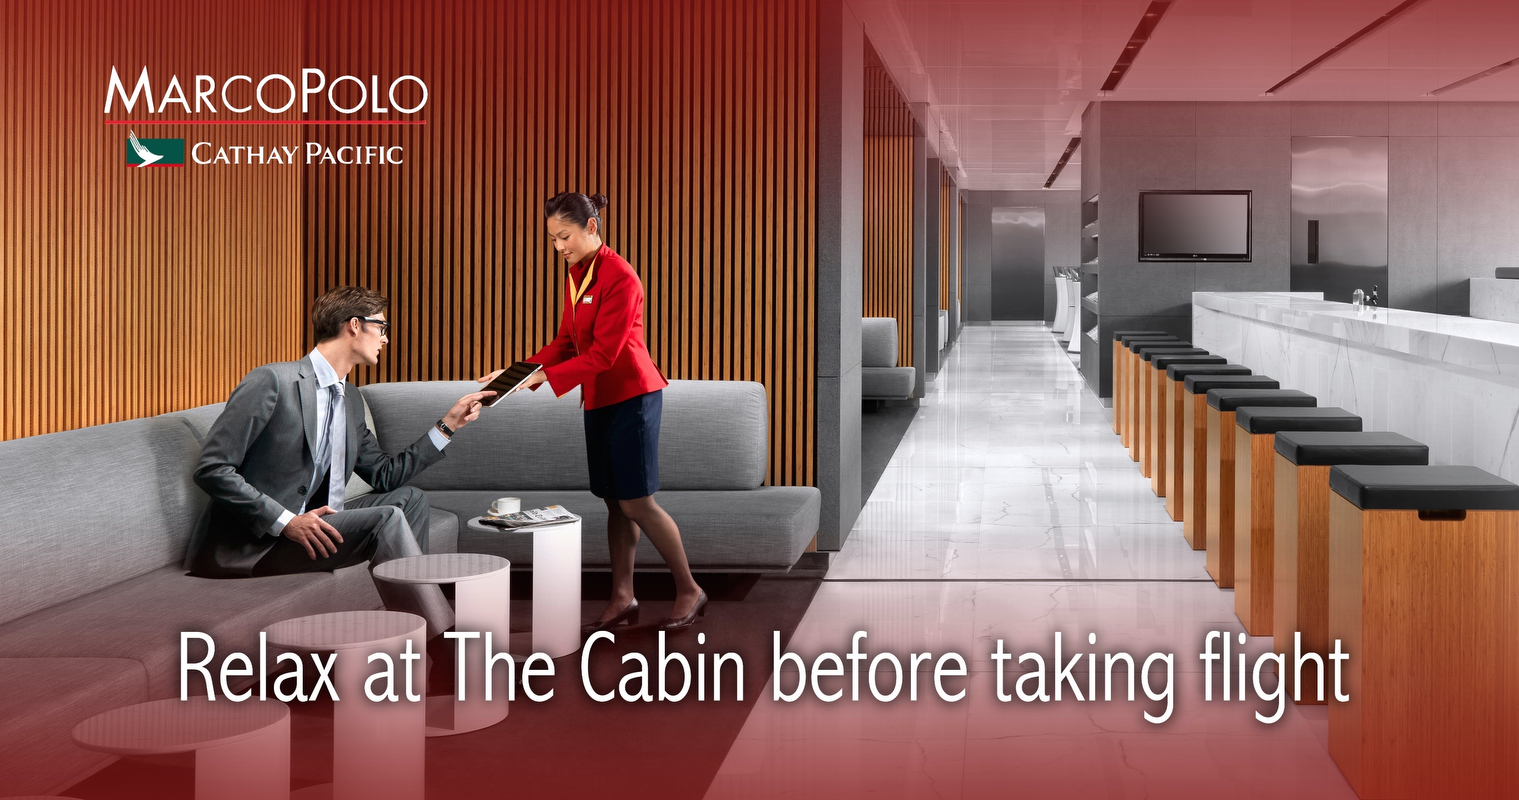 Advertisement for Cathay Pacific Marco Polo Club